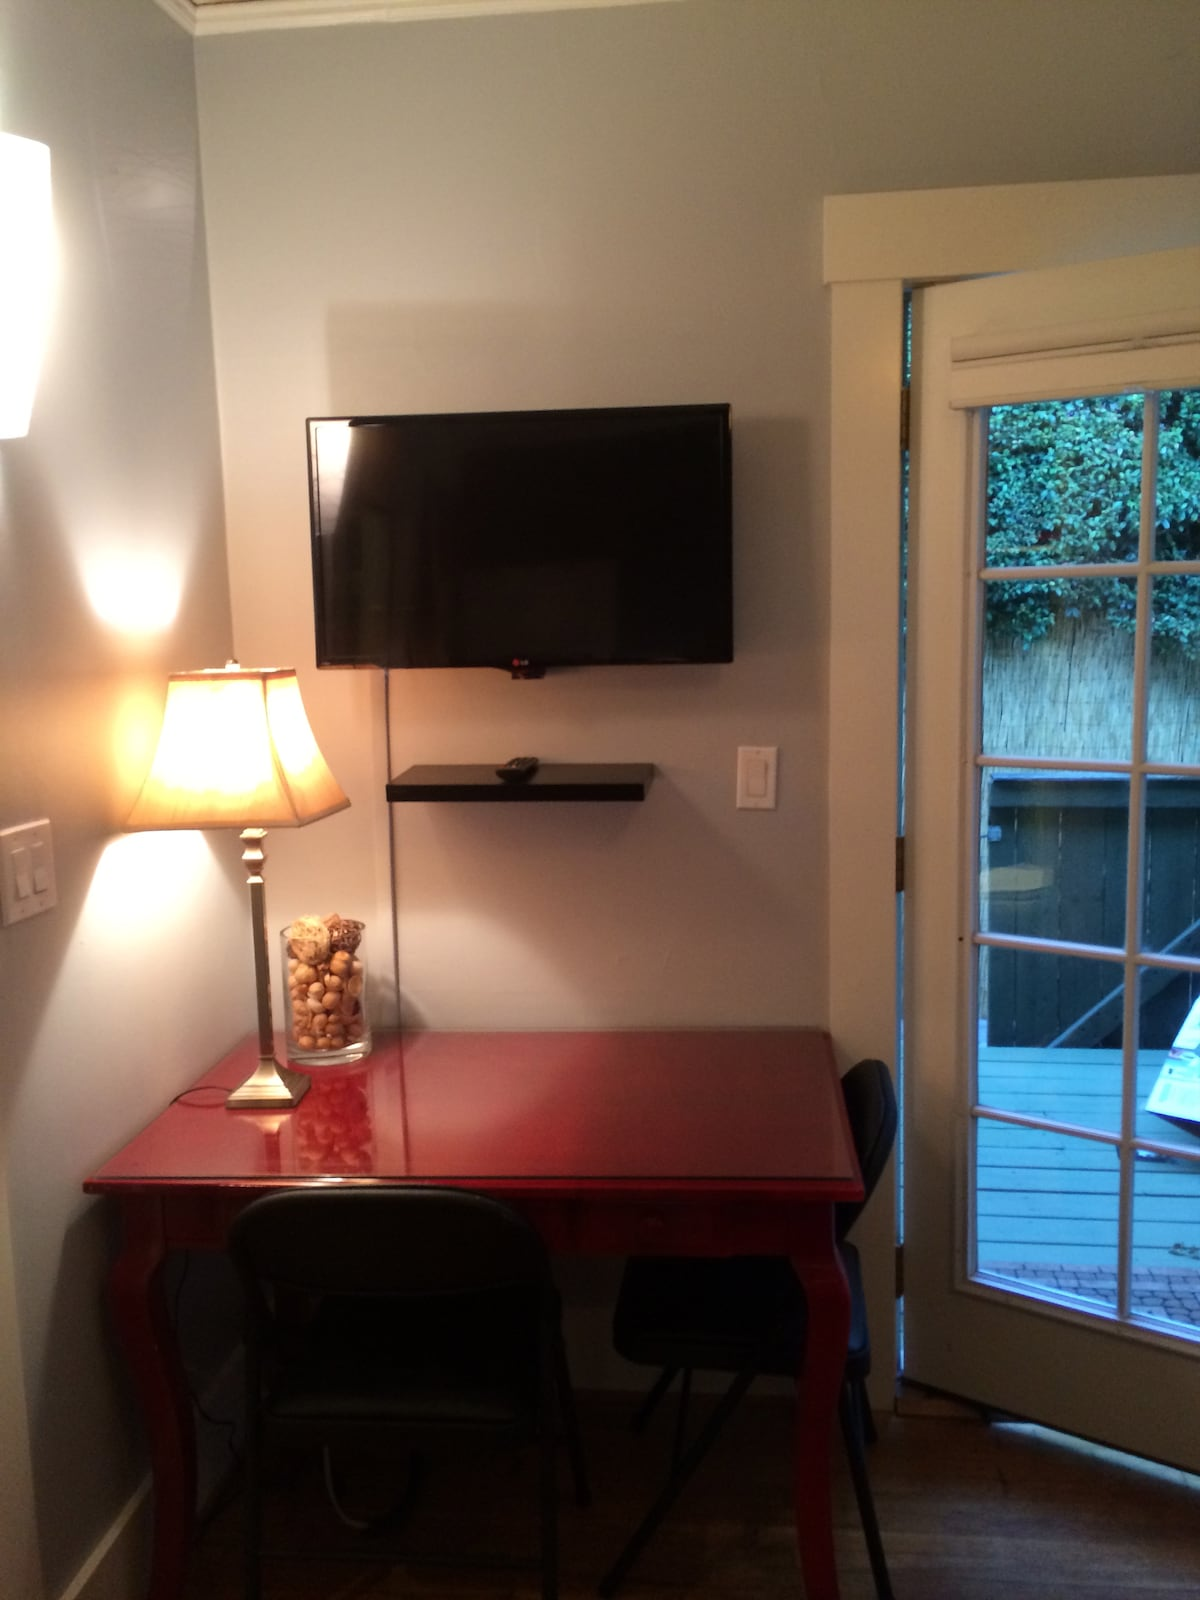 Watch NETFLIX free! Desk for computer and TV with Wi-Fi and Apple TV.